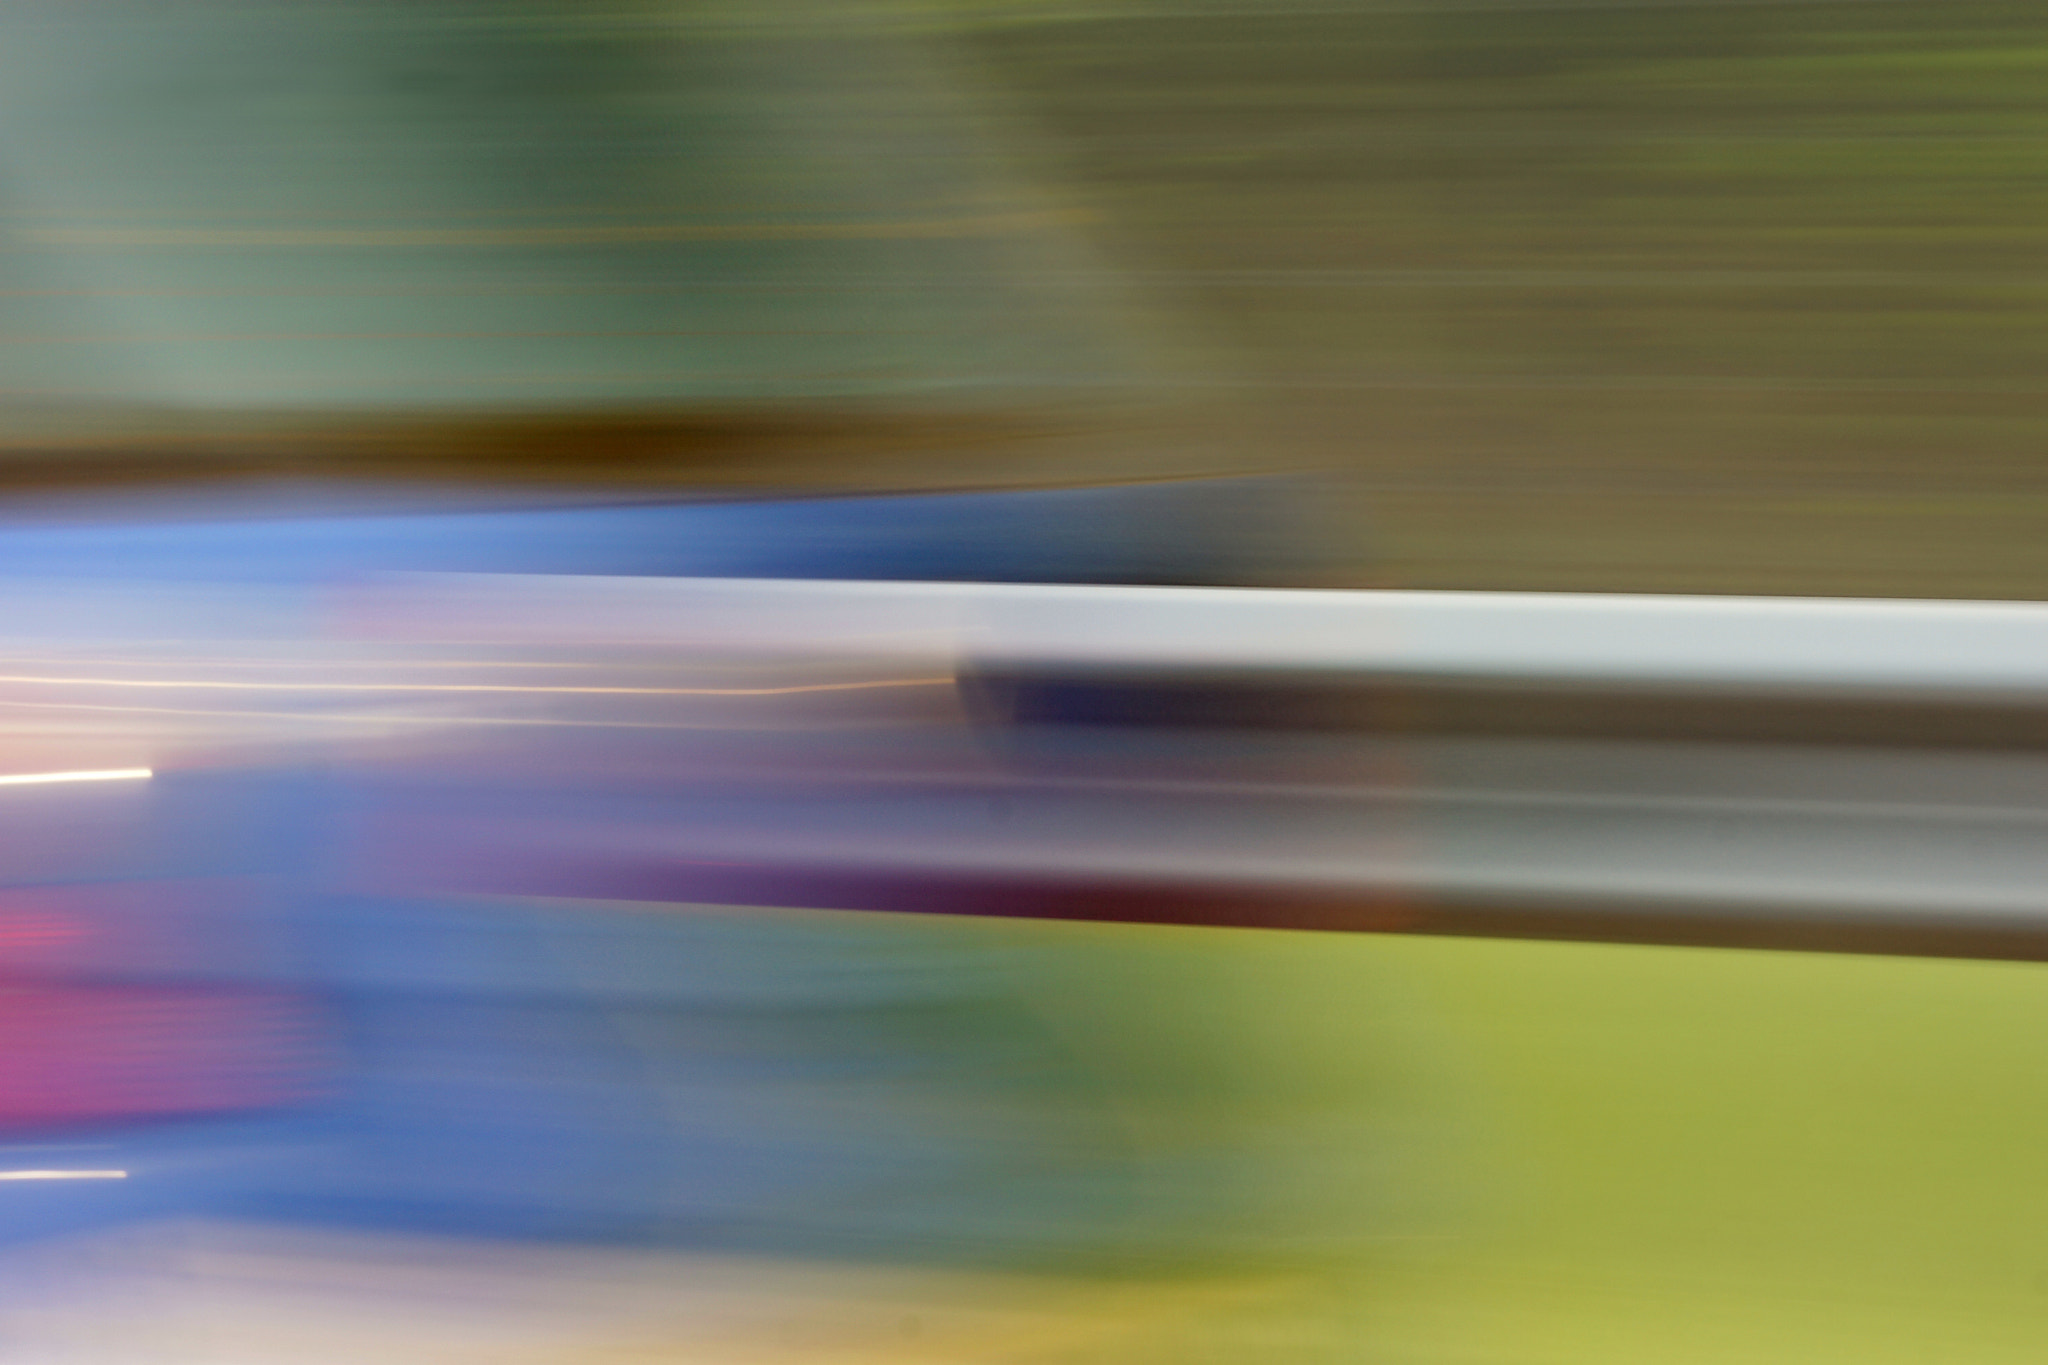 Photograph fast and furious by Michaela Wendland on 500px